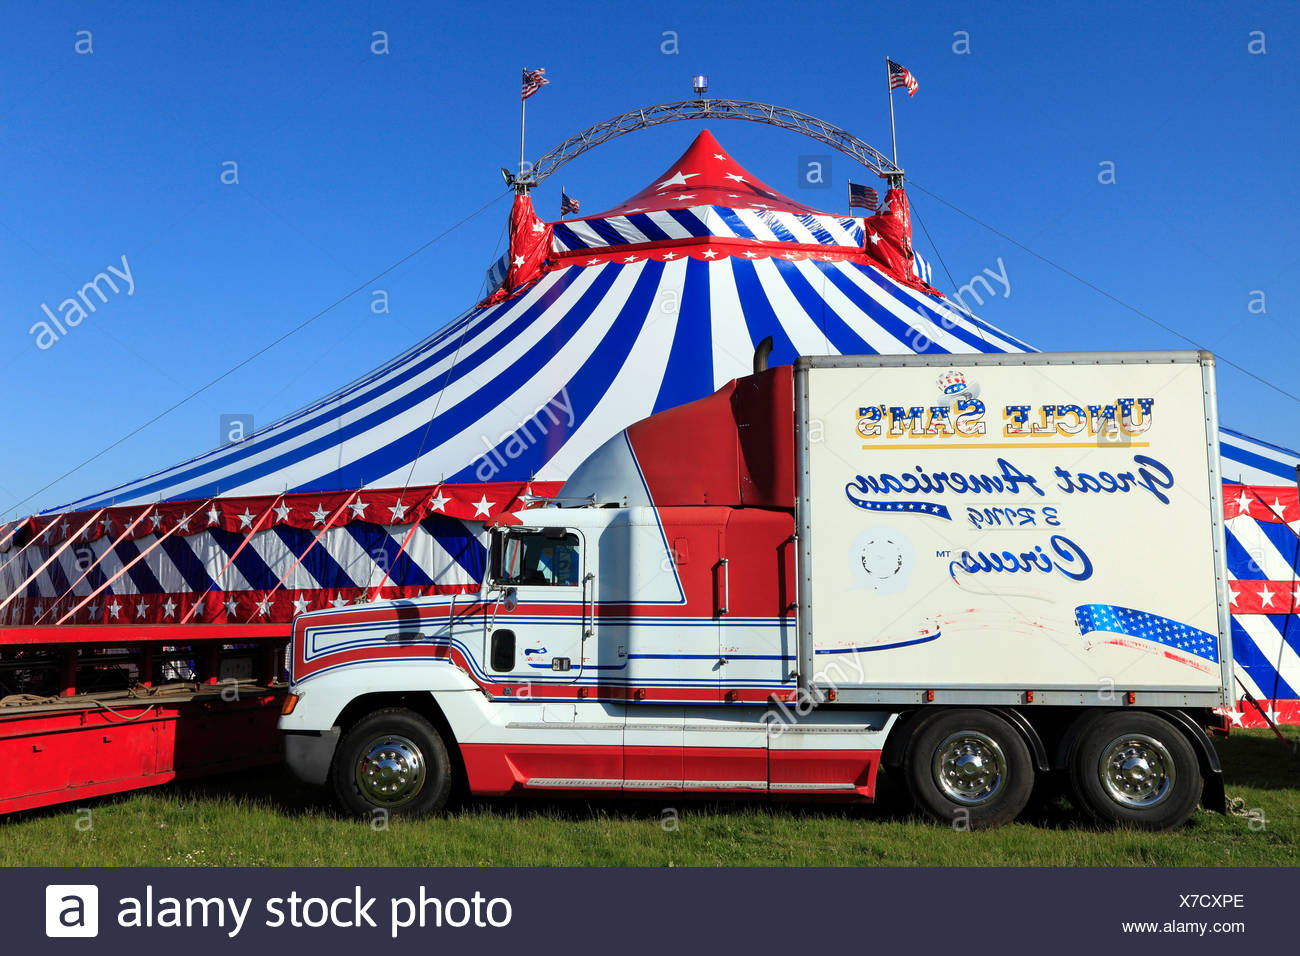 Uncle Sam's American Circus, UK travelling circus shows, Big Top tent, Norfolk, England - Stock Image